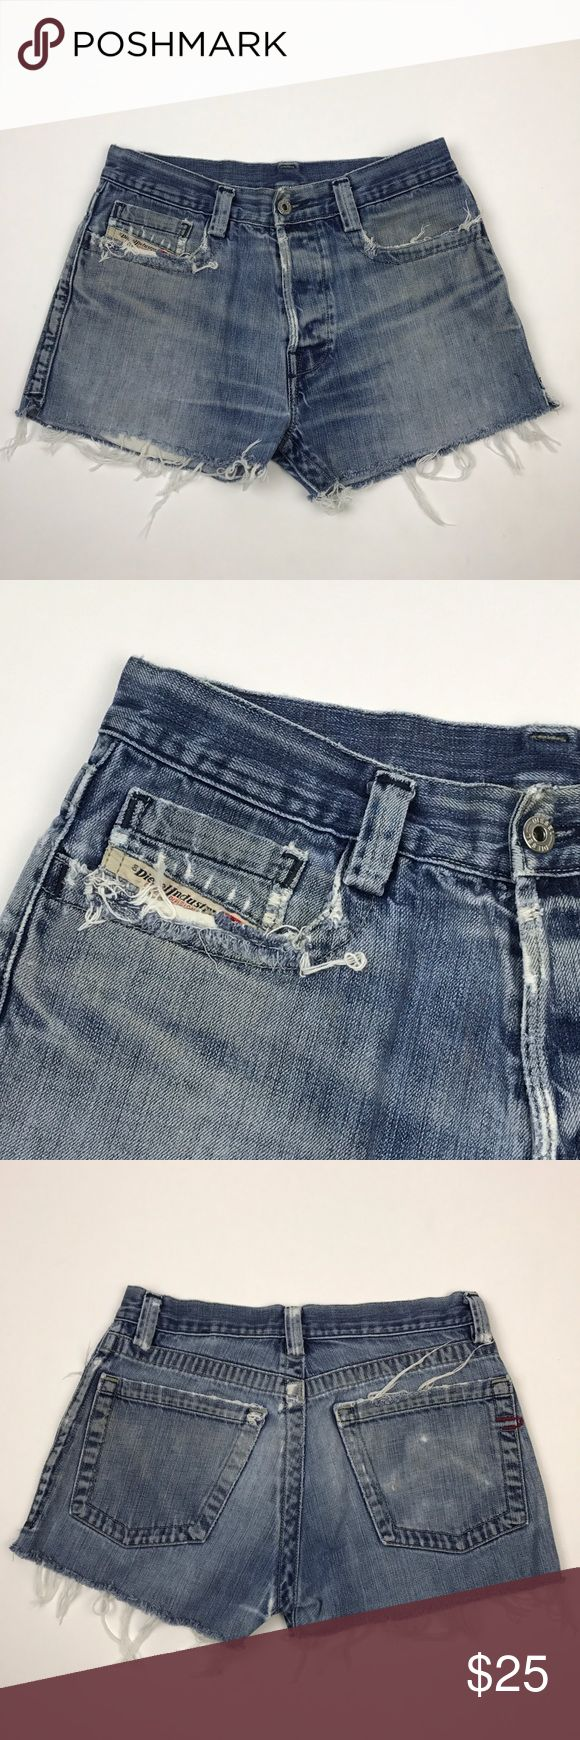 "[Diesel] Distressed Denim Cutoff Shorts Festival S Custom pair of one of a kind cutoff shorts handcrafted from a pair of men's Diesel jeans size 30. Measures and fits like a women's size 27. Check measurements! Boyfriend style. Button fly. Small side slits. Super distressed.  🔹Waist: 15"" flat across 🔹Hips: 19"" flat across 🔹Rise: 10"" 🔹Inseam: 2.5"" 🔹Out Seam: 12"" 🔹Condition: Excellent pre-owned condition. Distressed by design.  *BB22 Diesel Shorts Jean Shorts"